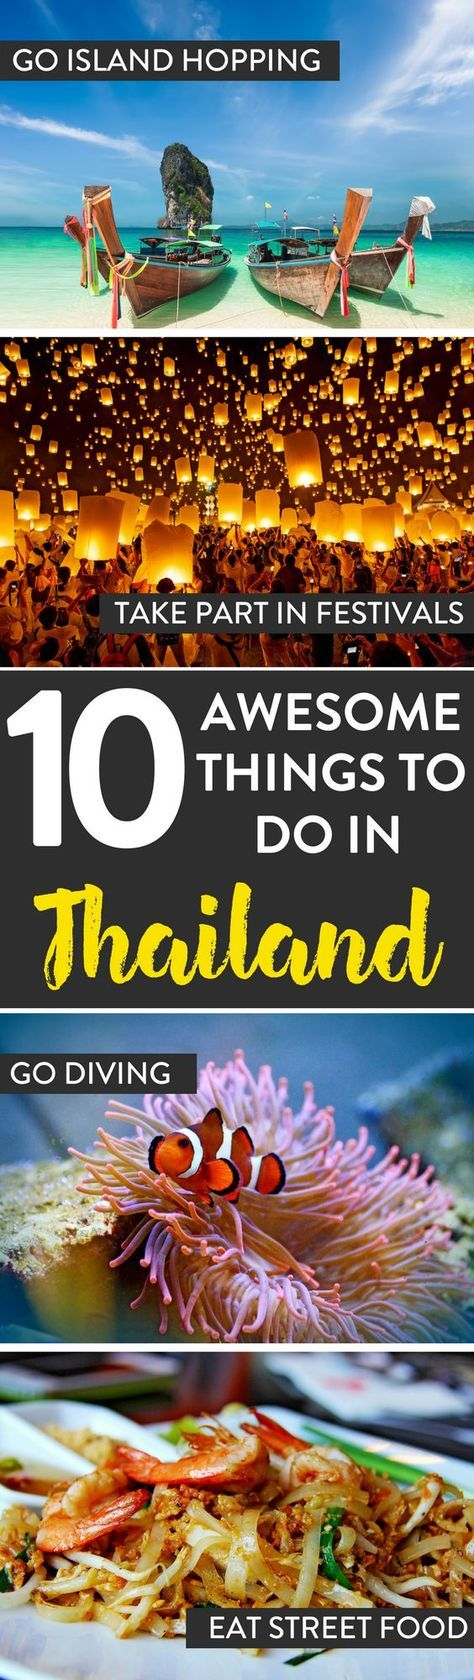 Thailand Travel   Looking for awesome things to do while in Thailand? Here are 10 of our recommendations on what to see and do.